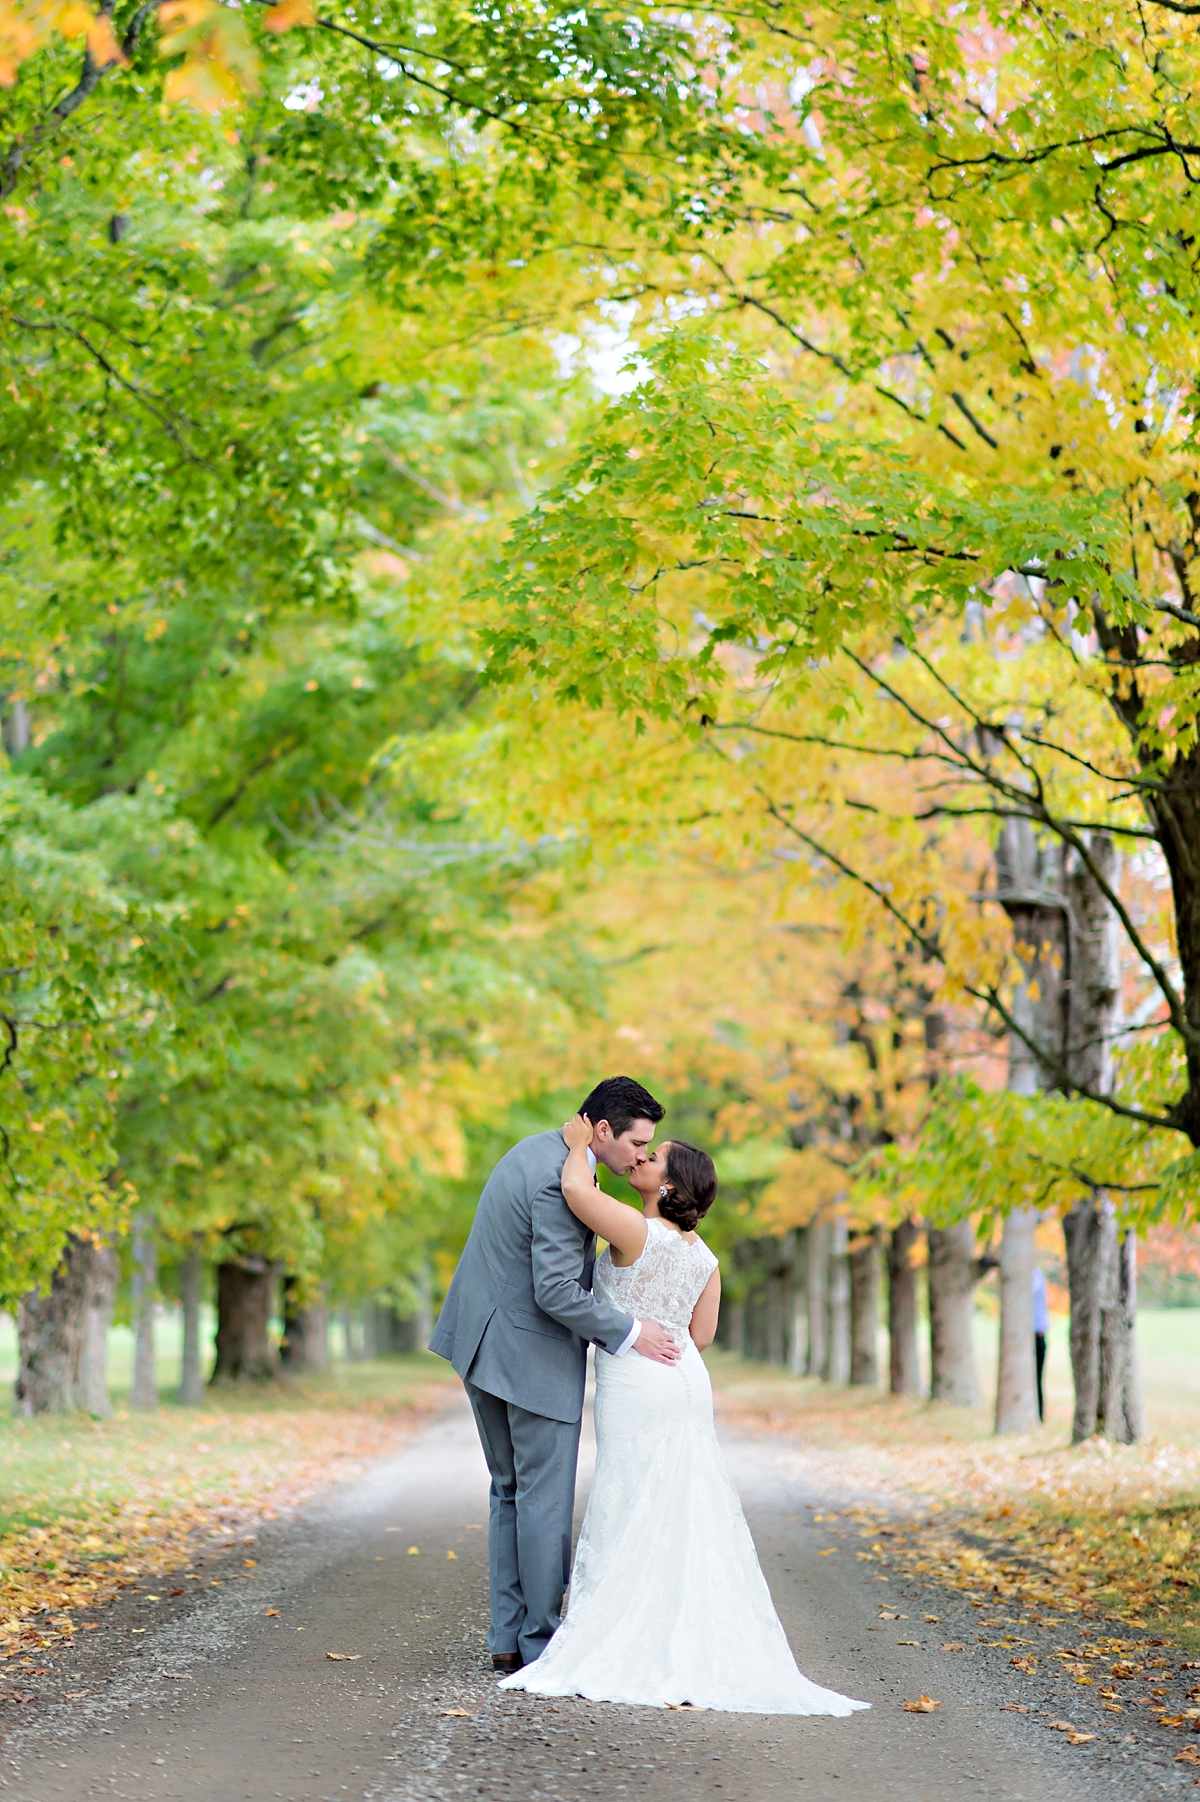 Andrea + Kenzie- A Fall Apple Orchard Wedding   |  Candace Berry Photography053